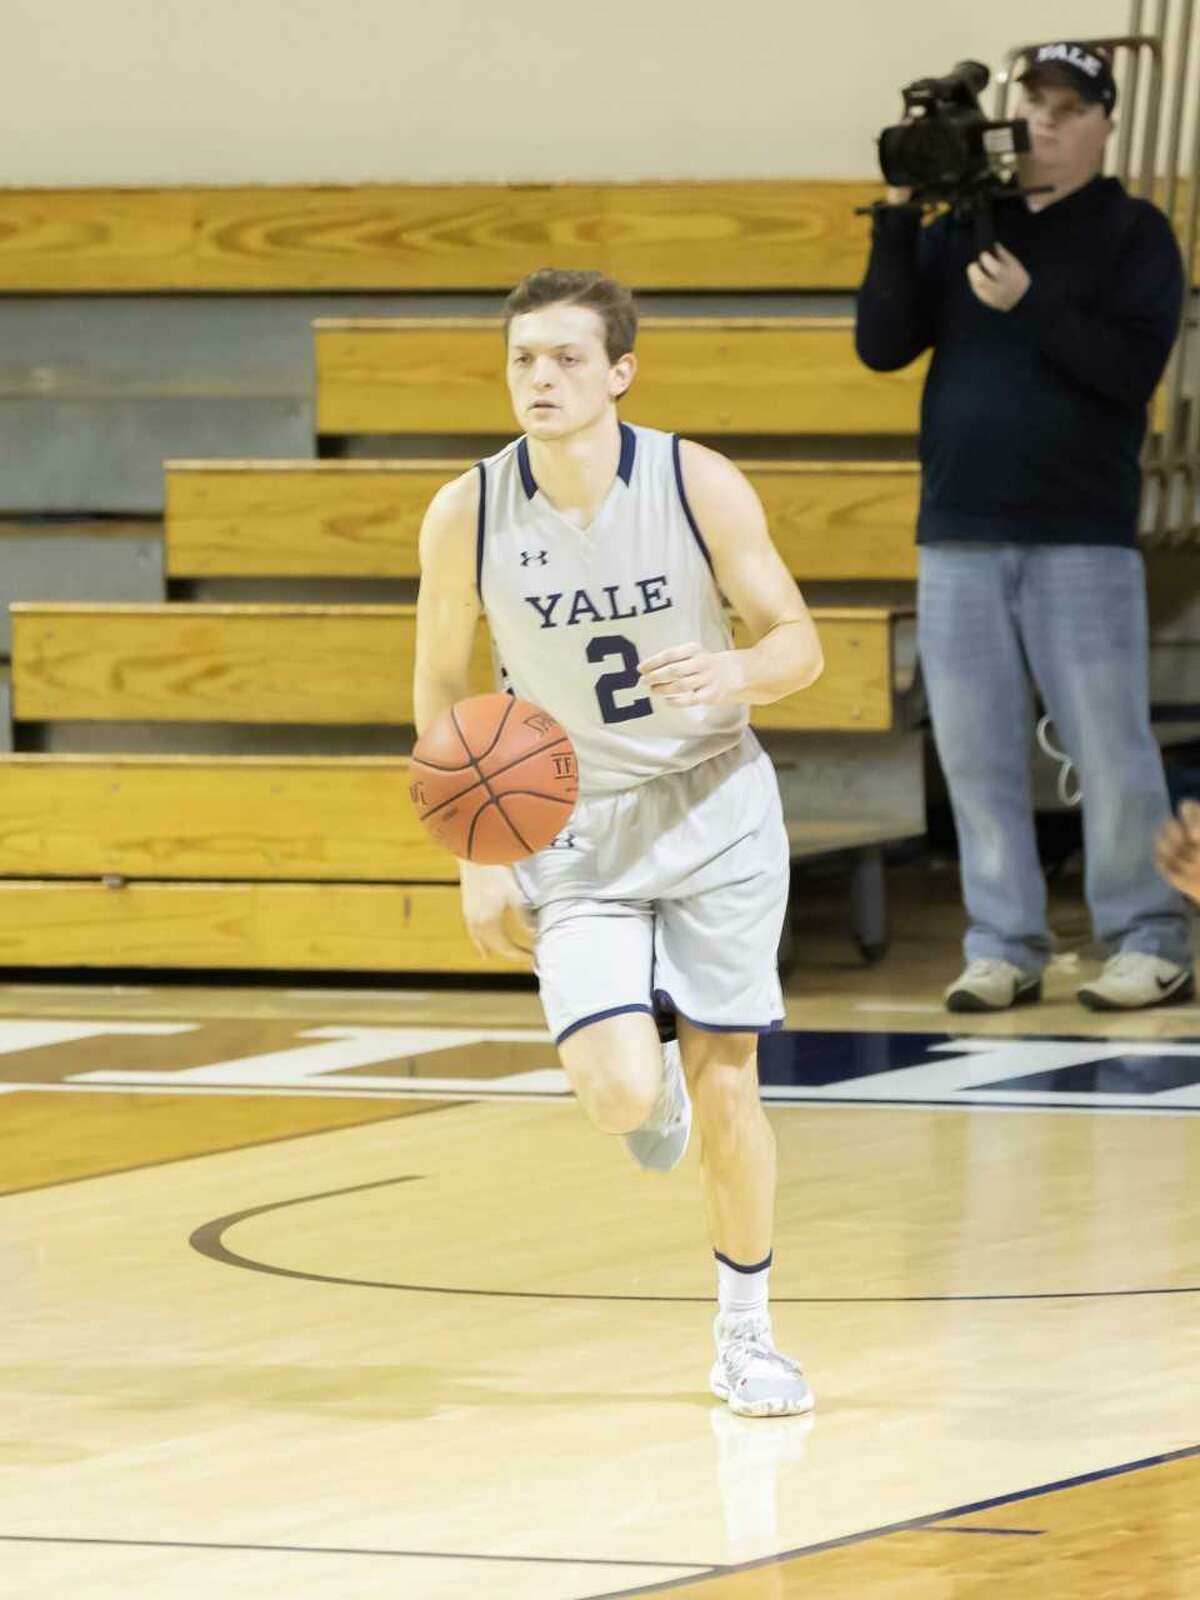 Eric Monroe was voted as Yale's men's basketball captain for next season by his teammates.